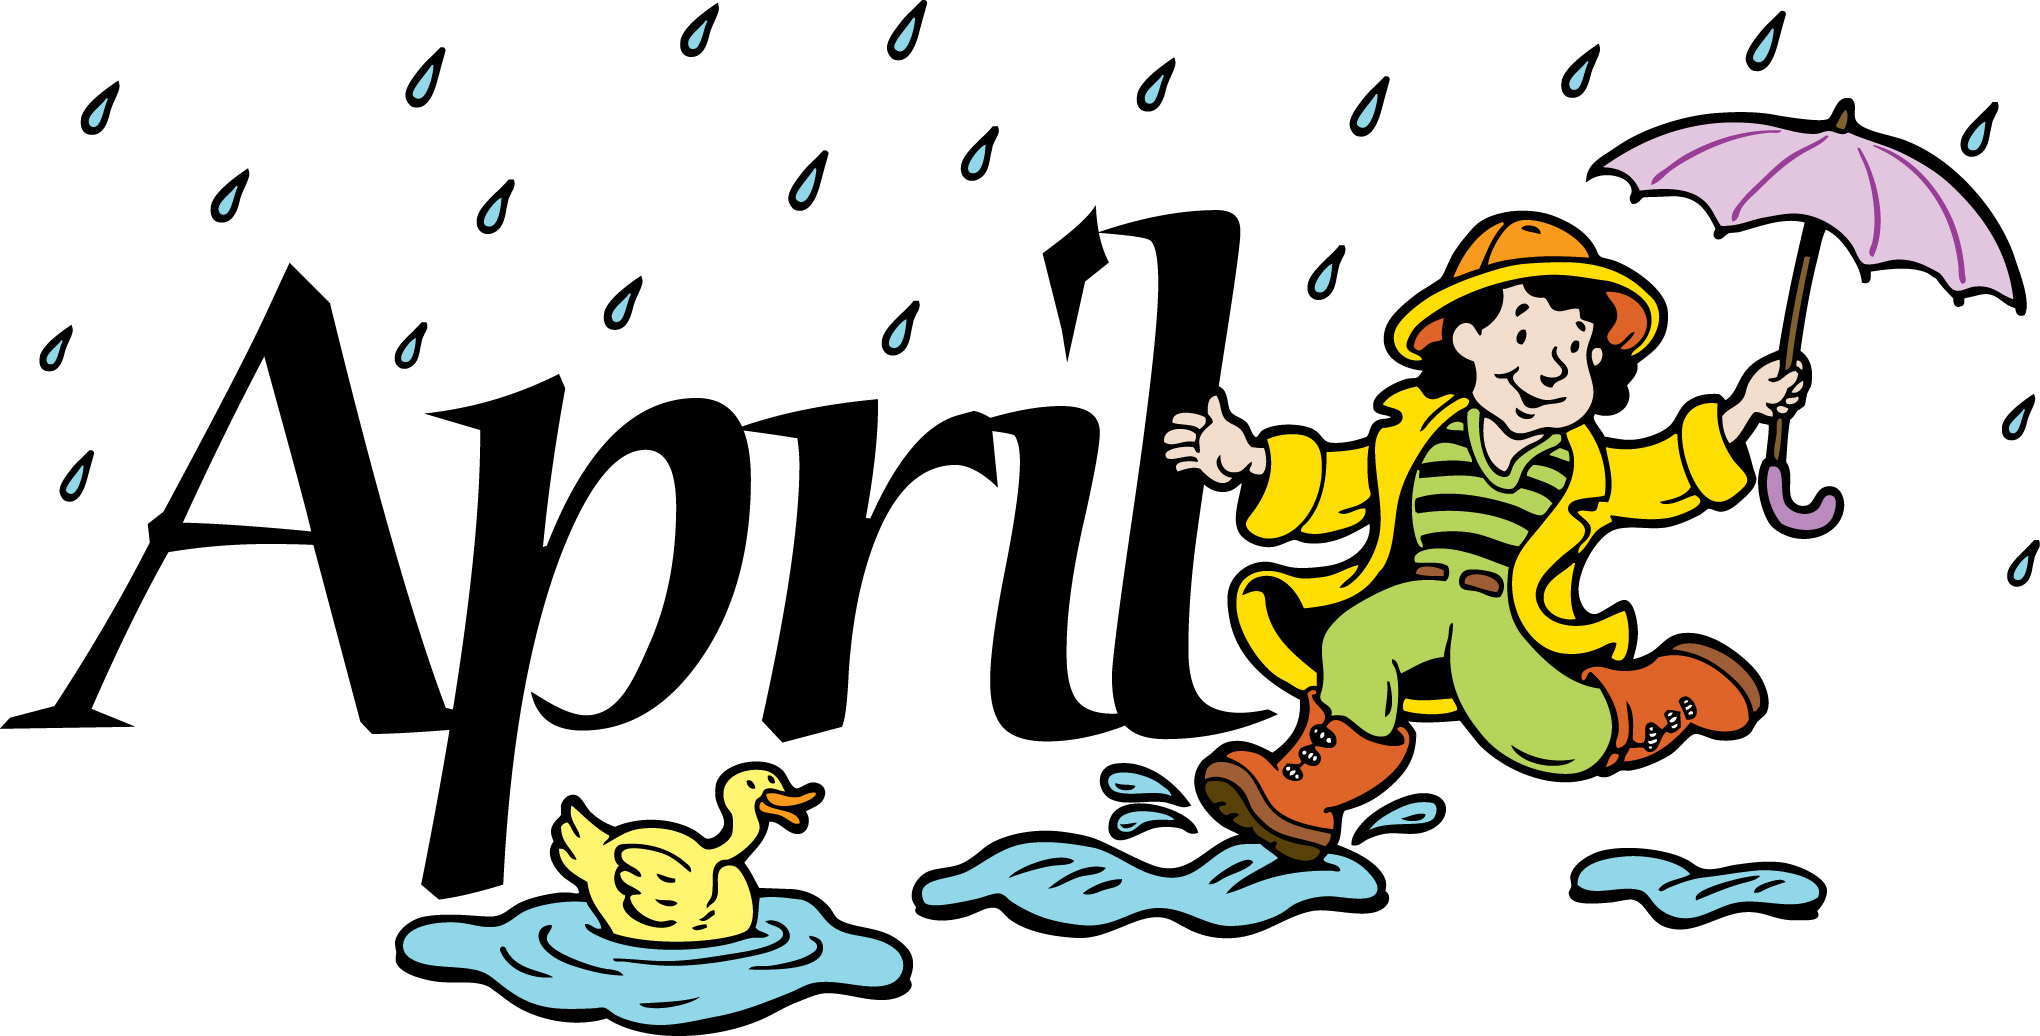 april calendar of events woodstock nb recreation rh woodstocknbrecreation com April Birthday Clip Art April Fools Clip Art